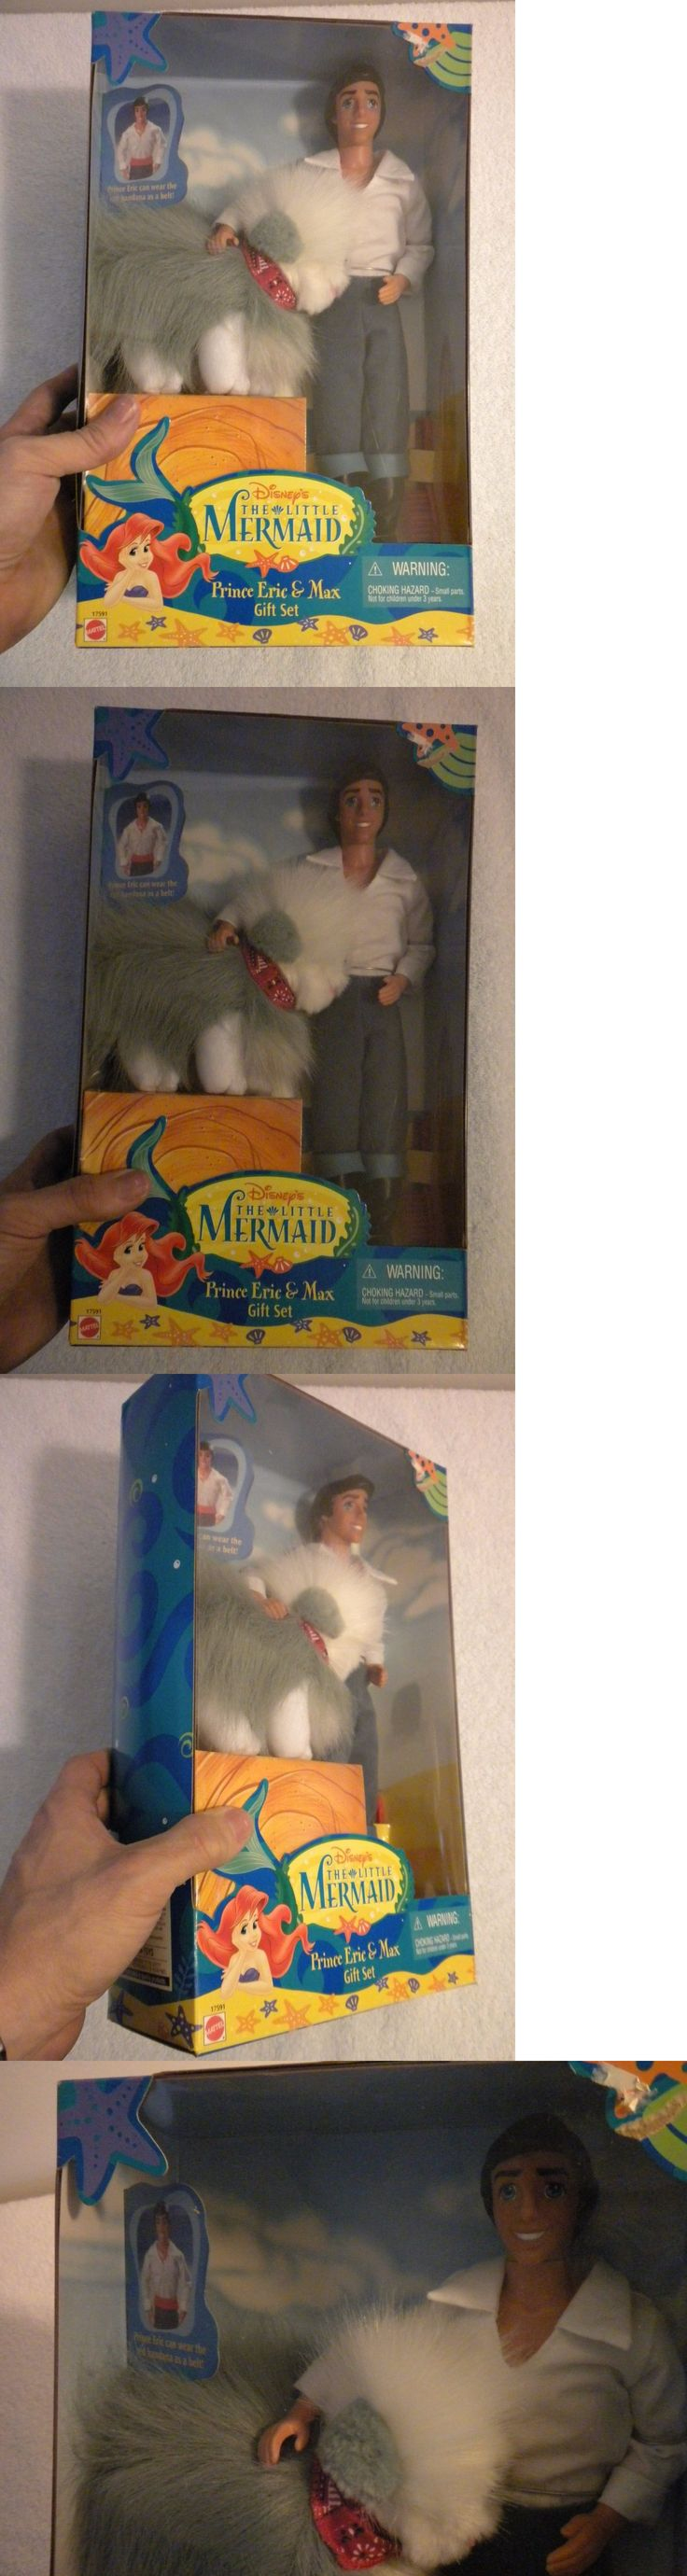 Little Mermaid 44036: Vintage 90S Disney Doll Prince Eric And Max Gift Set From The Little Mermaid New -> BUY IT NOW ONLY: $79.5 on eBay!